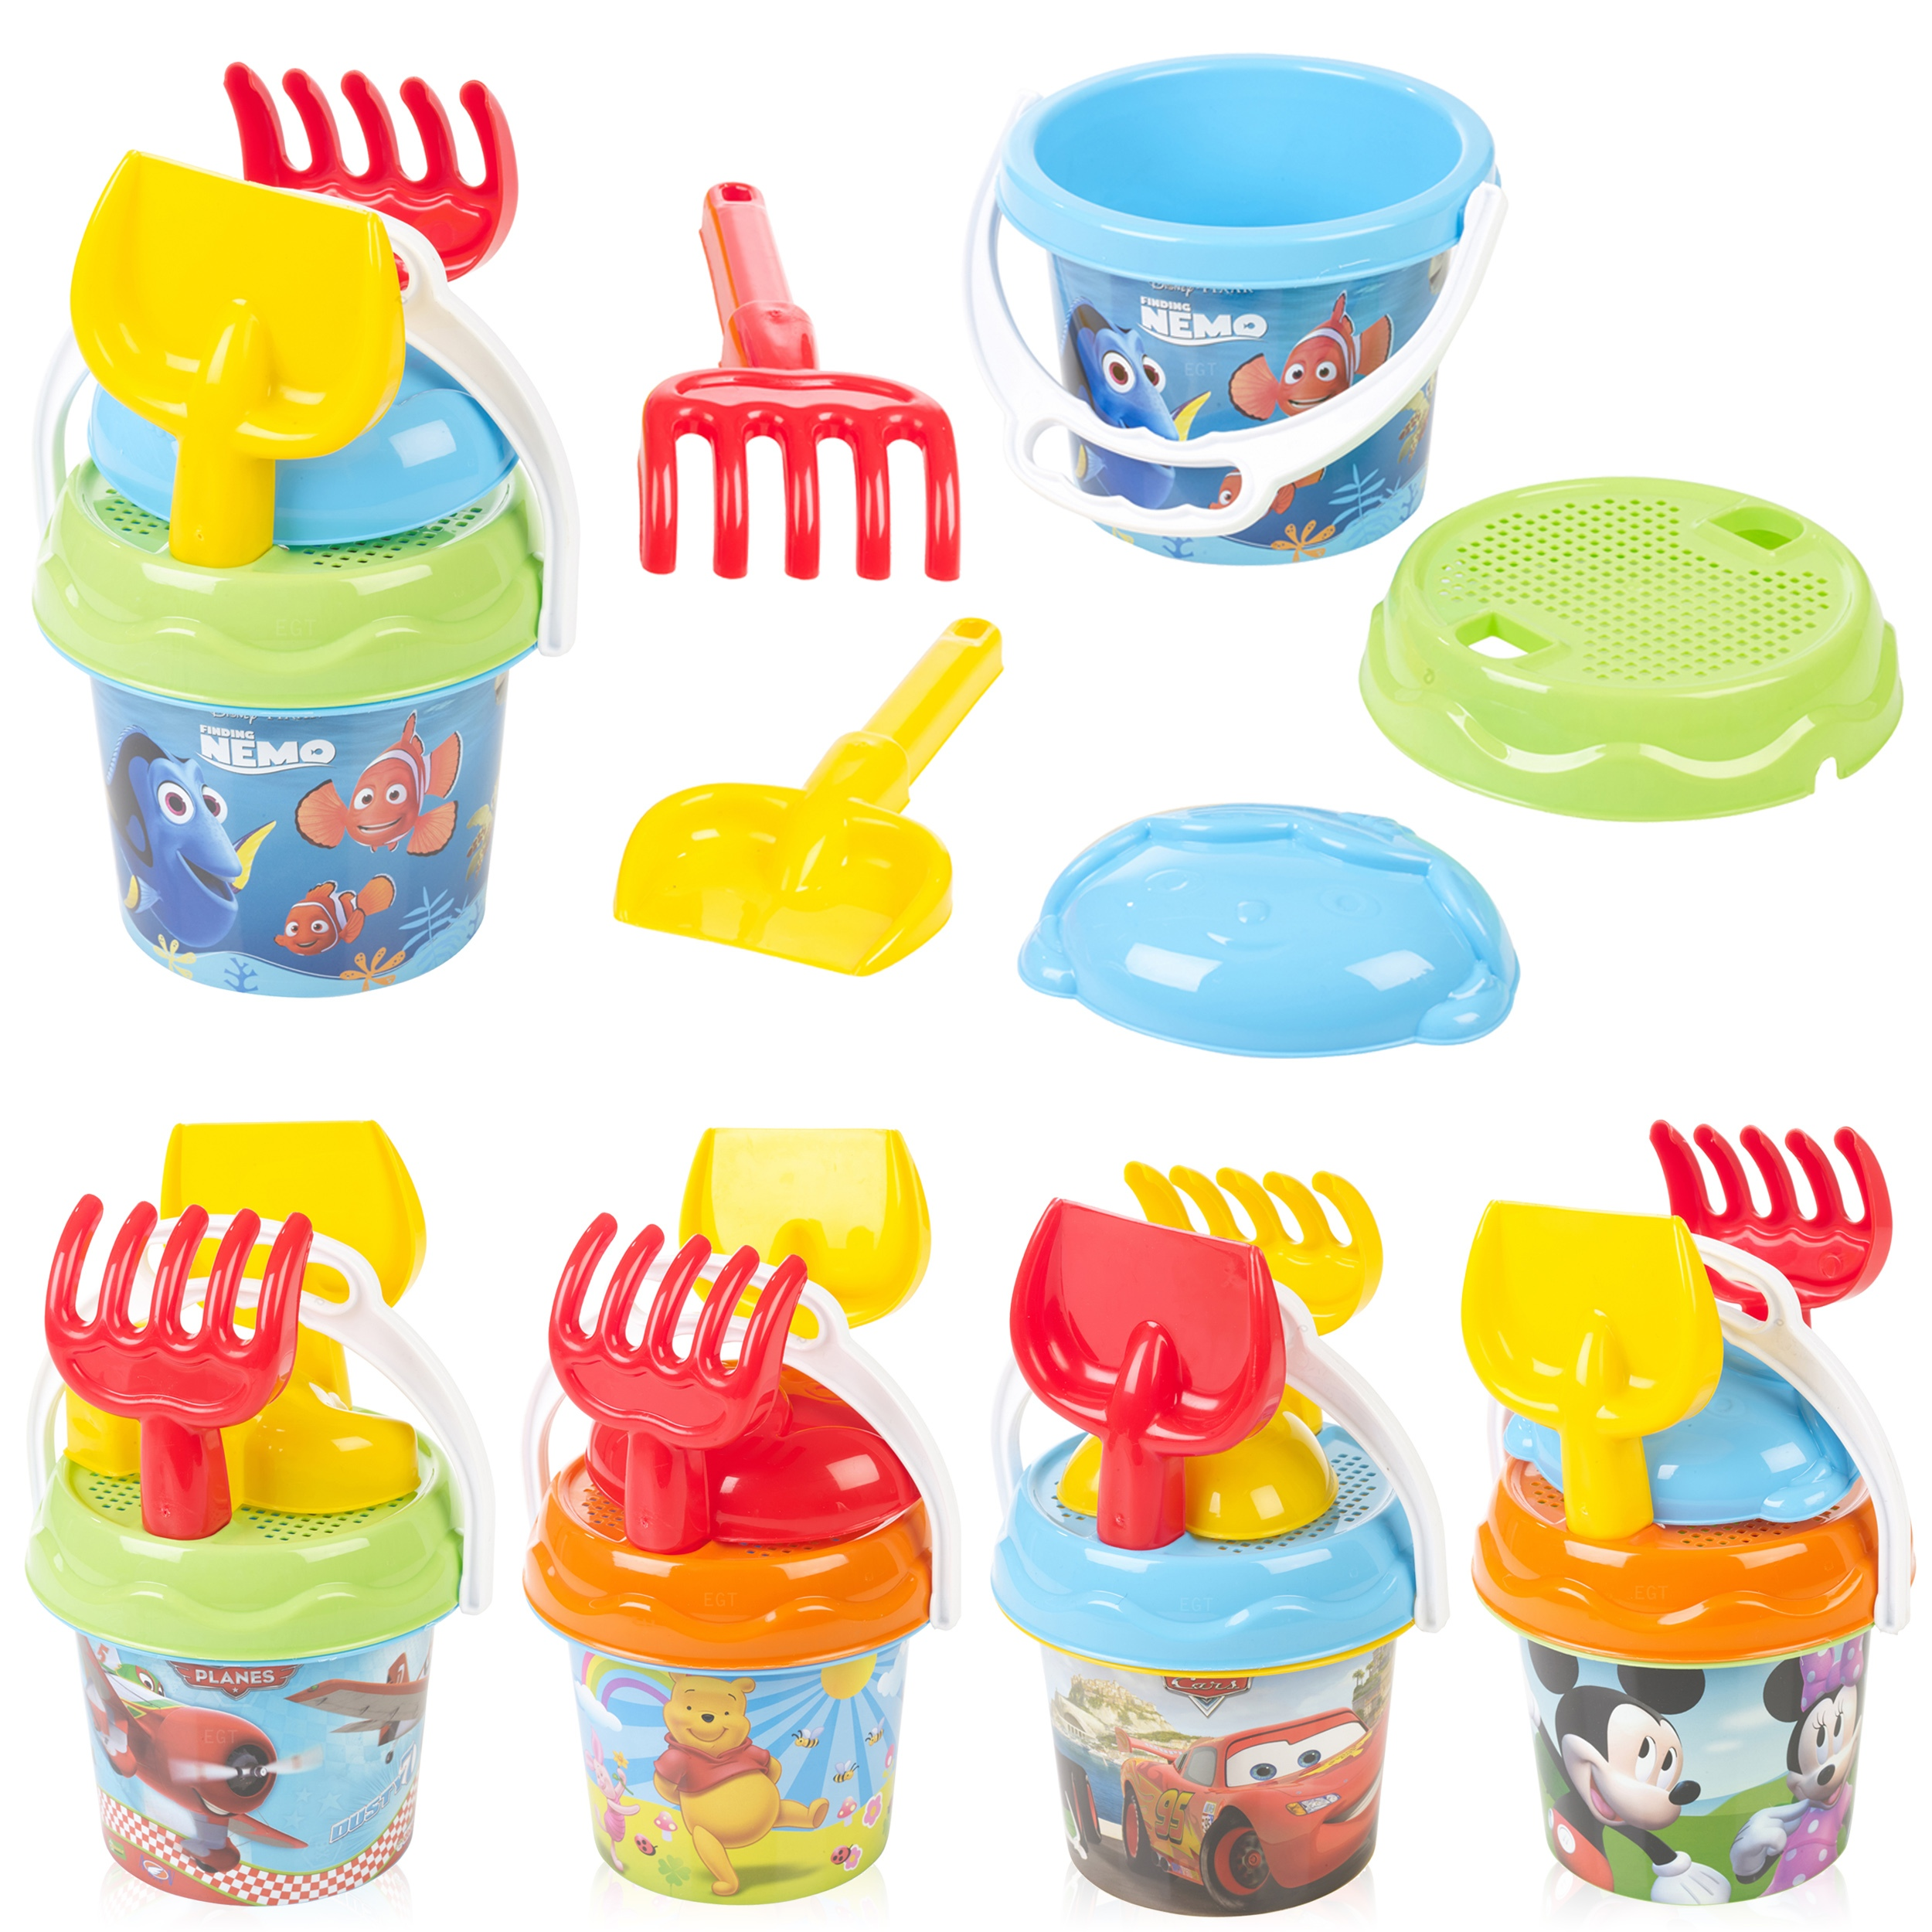 Seaside Bucket Toys & Games